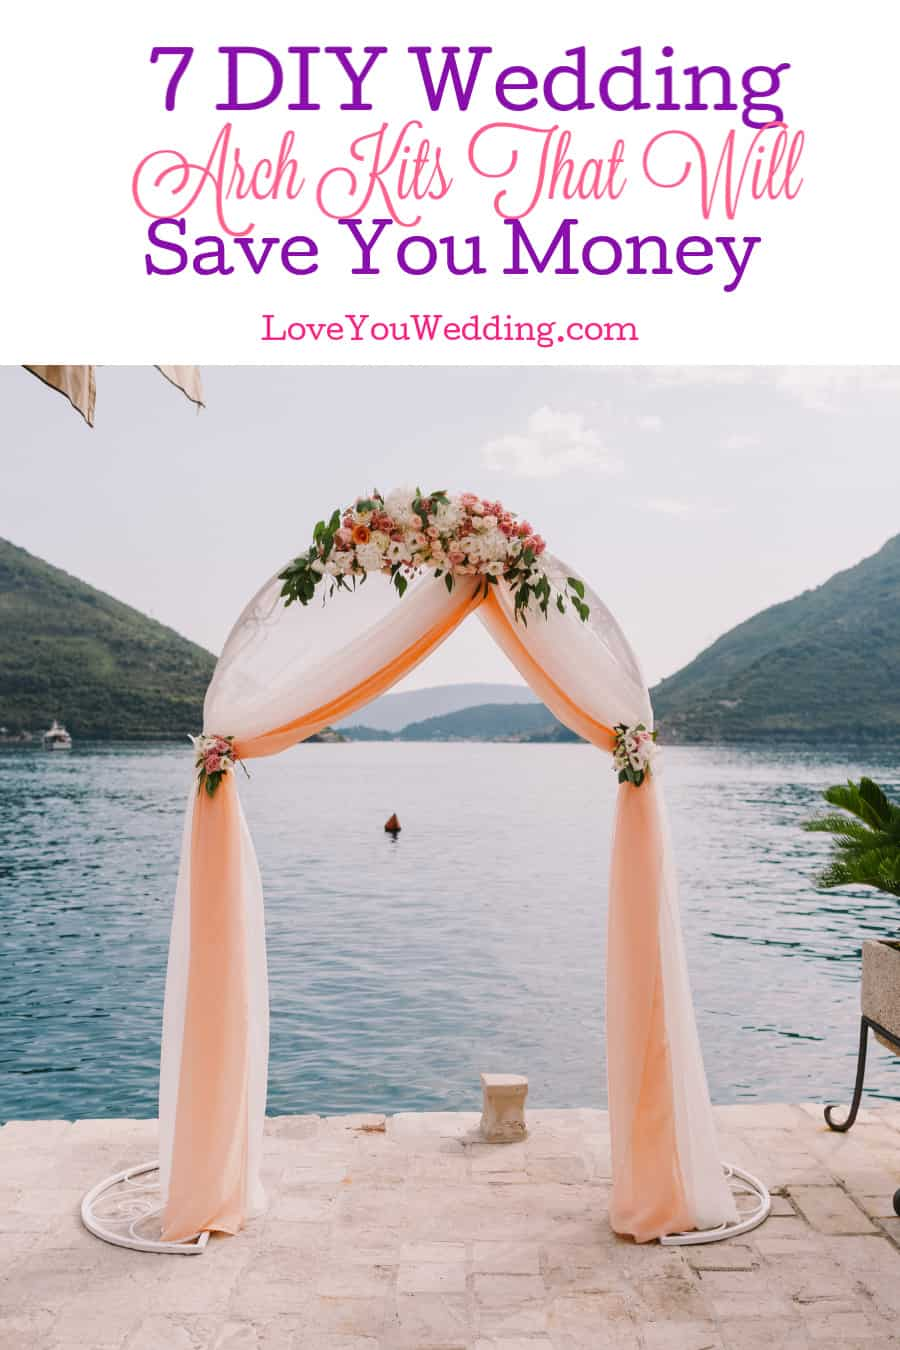 Save a bundle on your big day without sacrificing style by using one of these fun DIY wedding arch kits to make your own stunning decor! Check them out!